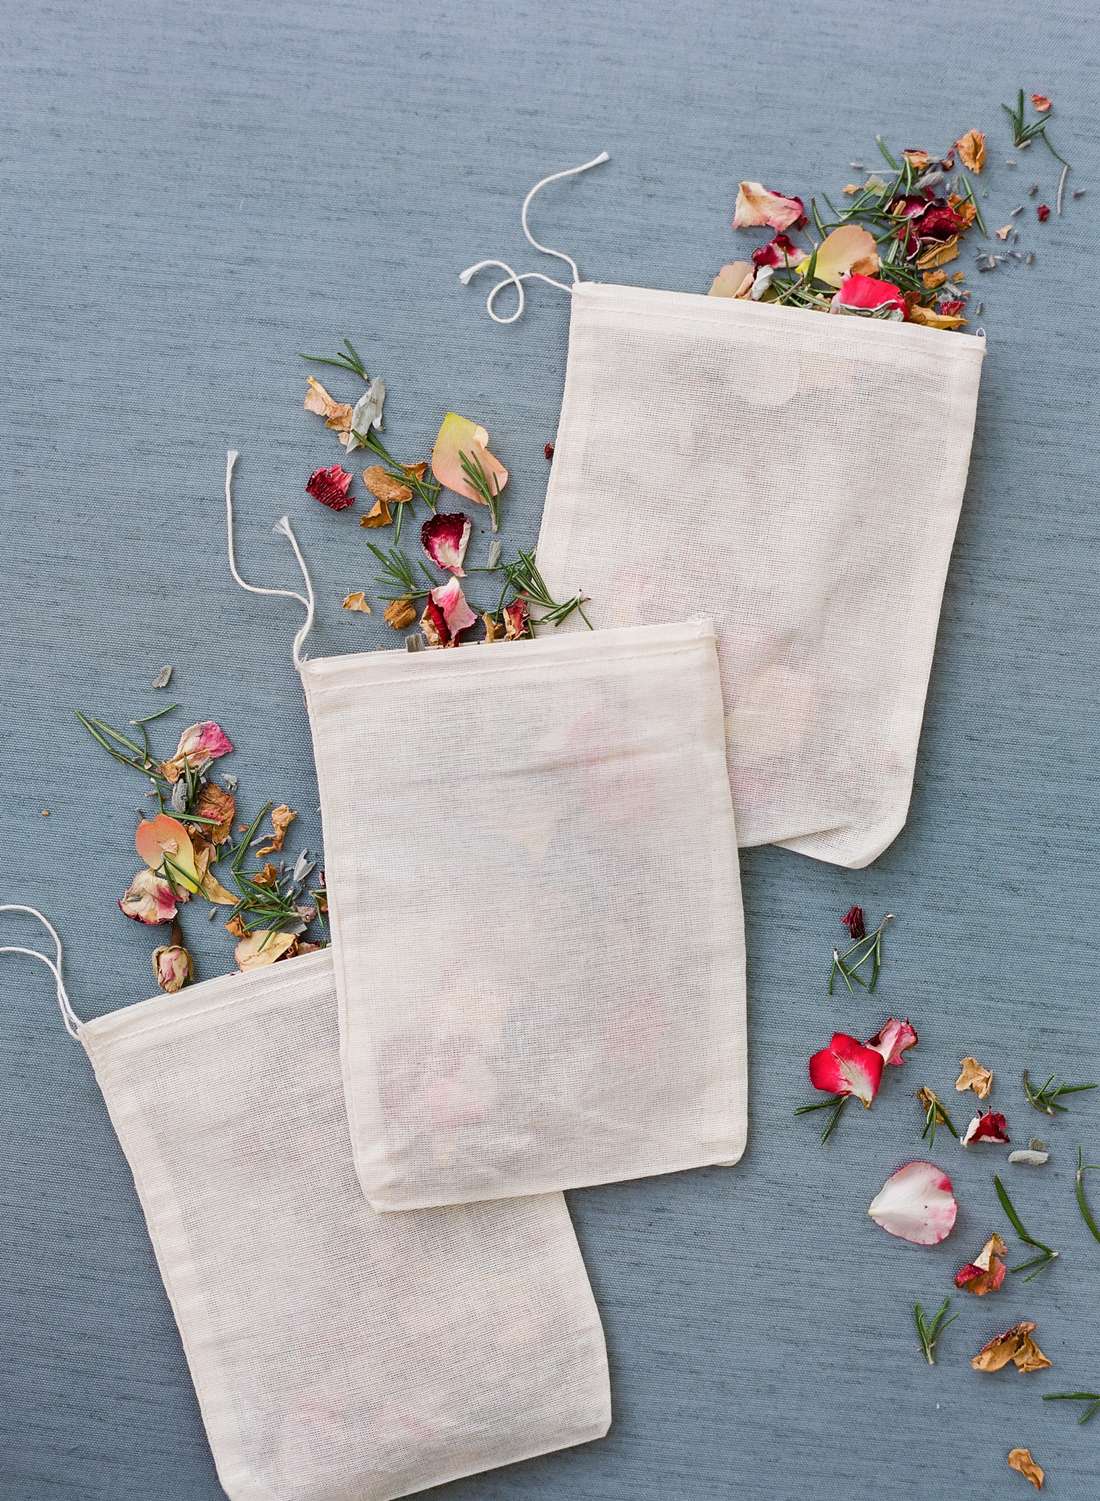 white pouches filled with dried flower petals and herbs